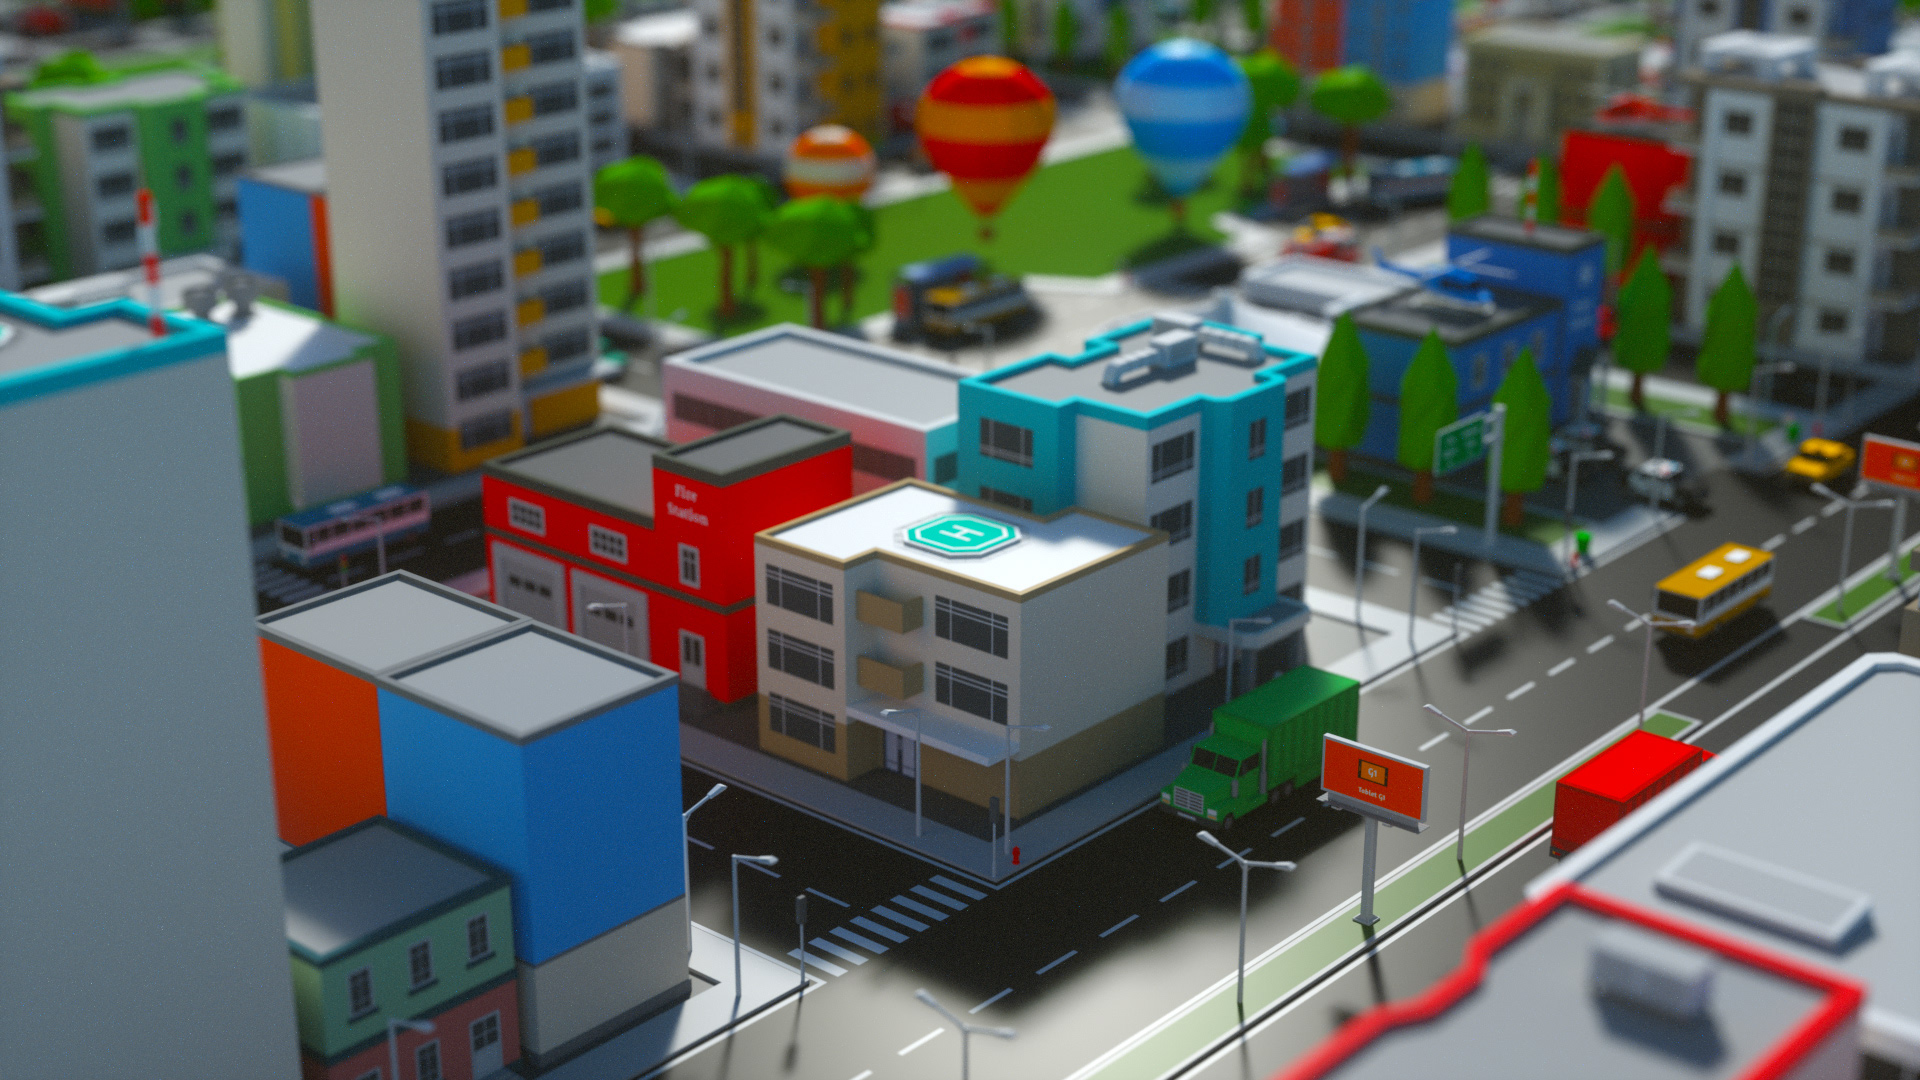 Google town I conceptualized